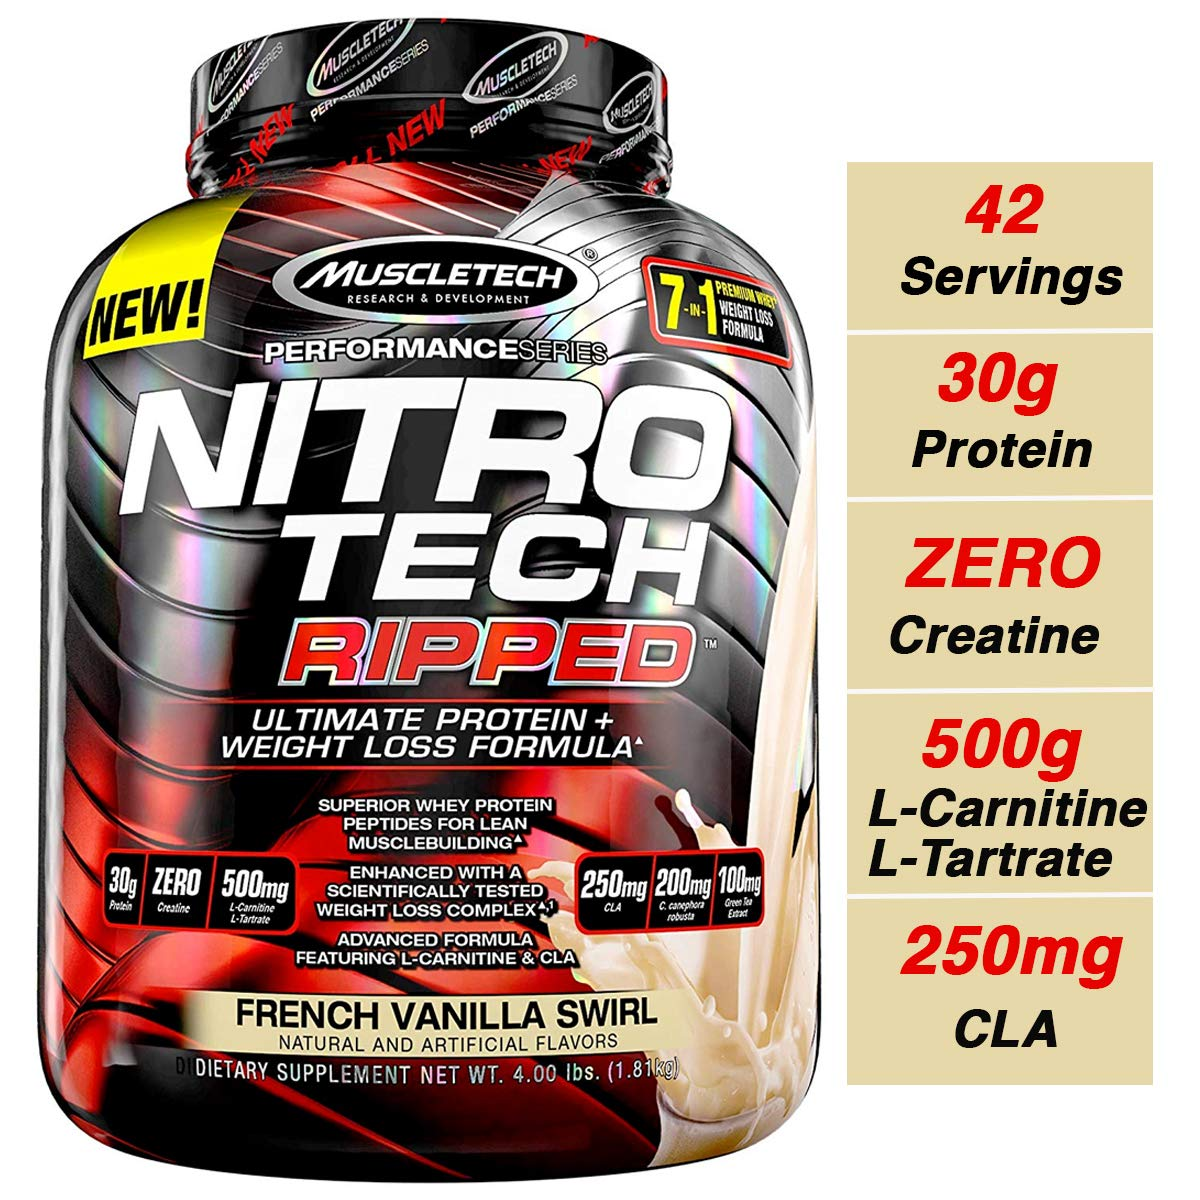 MuscleTech Nitro Tech Ripped Ultra Clean Whey Protein Isolate Powder + Weight Loss Formula, Low Sugar, Low Carb, French Vanilla Swirl, 4 Pounds by MuscleTech